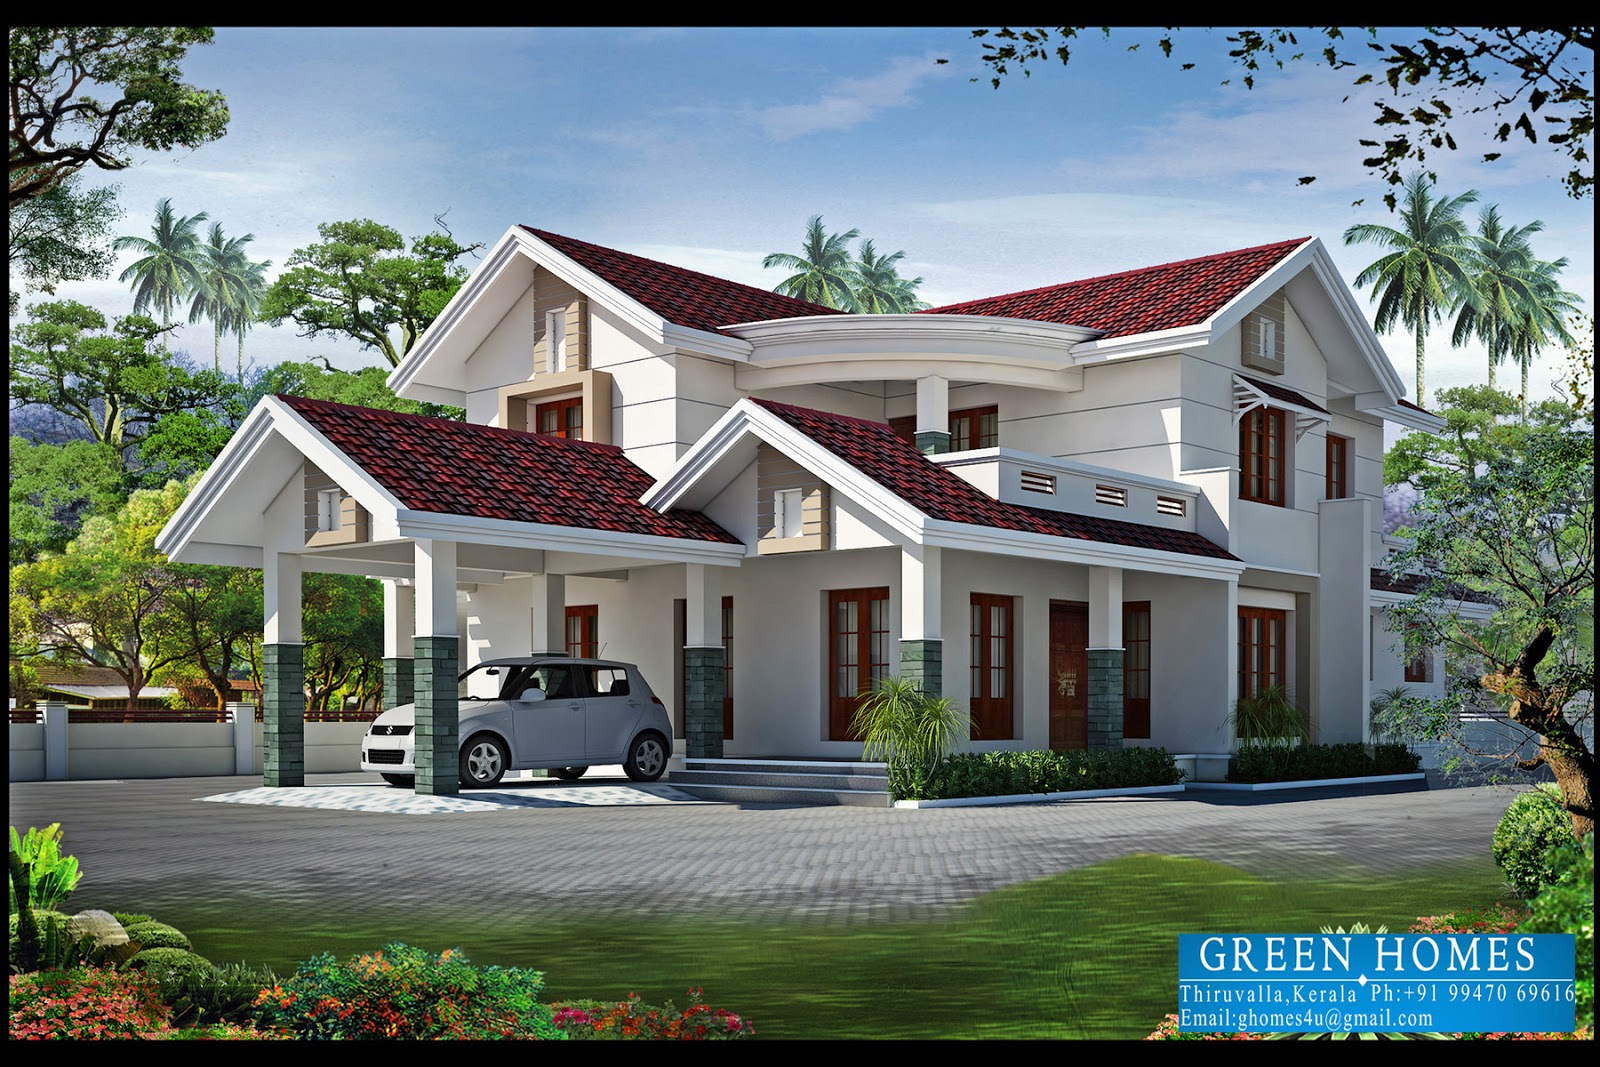 Green homes december 2012 for Latest kerala style home designs